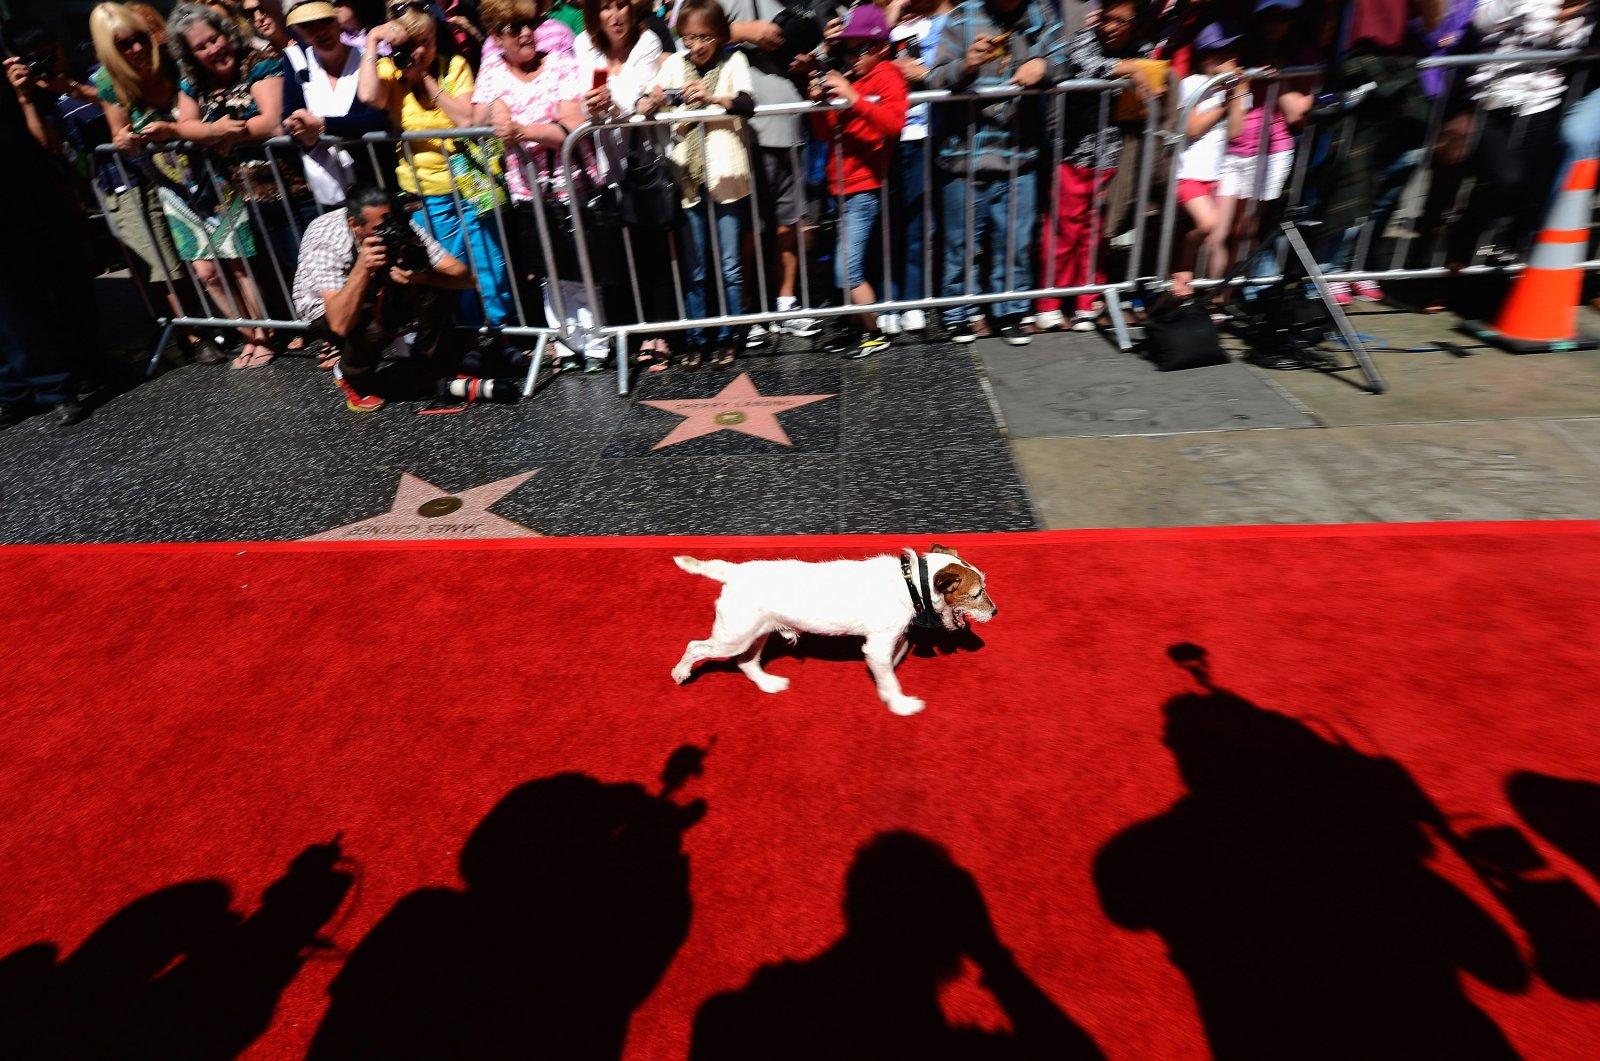 """Uggie, the canine star form the film """"The Artist"""" which won an Academy Award for Best Picture, walks the red carpet as he arrives with his trainer Omar Von Muller outside Grauman's Chinese Theatre to cast his paw prints in cement during a ceremony marking his retirement from show business in Hollywood, California, June 25, 2012. (AFP Photo)"""